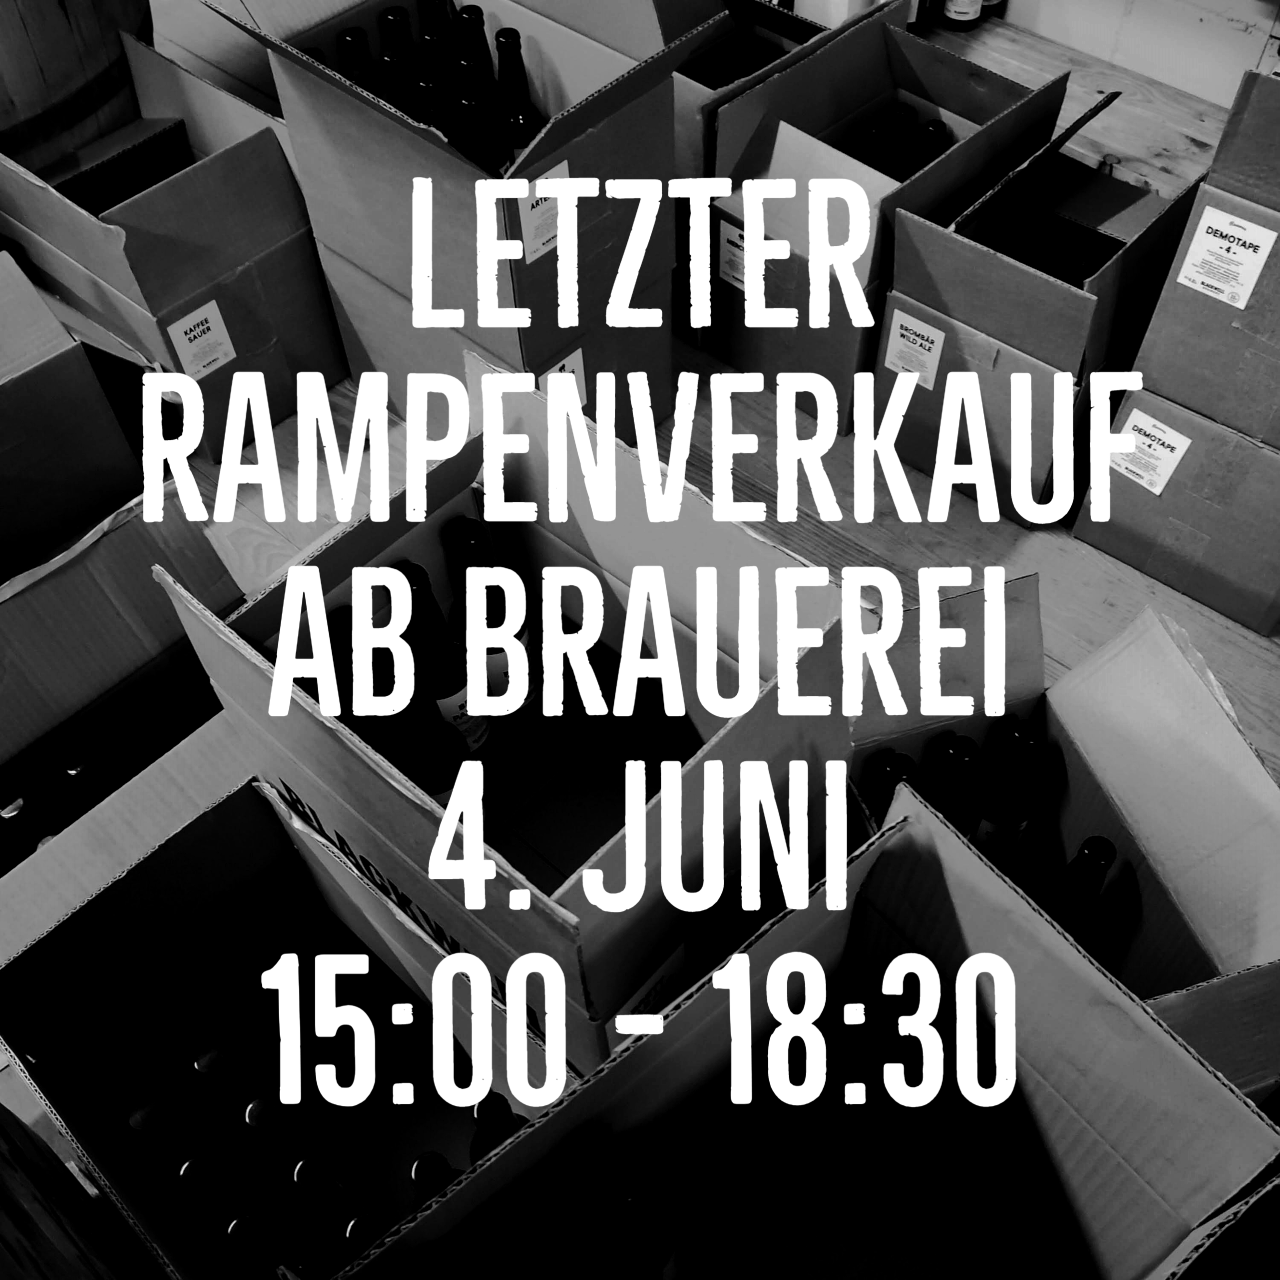 https://blackwellbrewery.ch/wp-content/uploads/2021/06/letzte-rampe.png